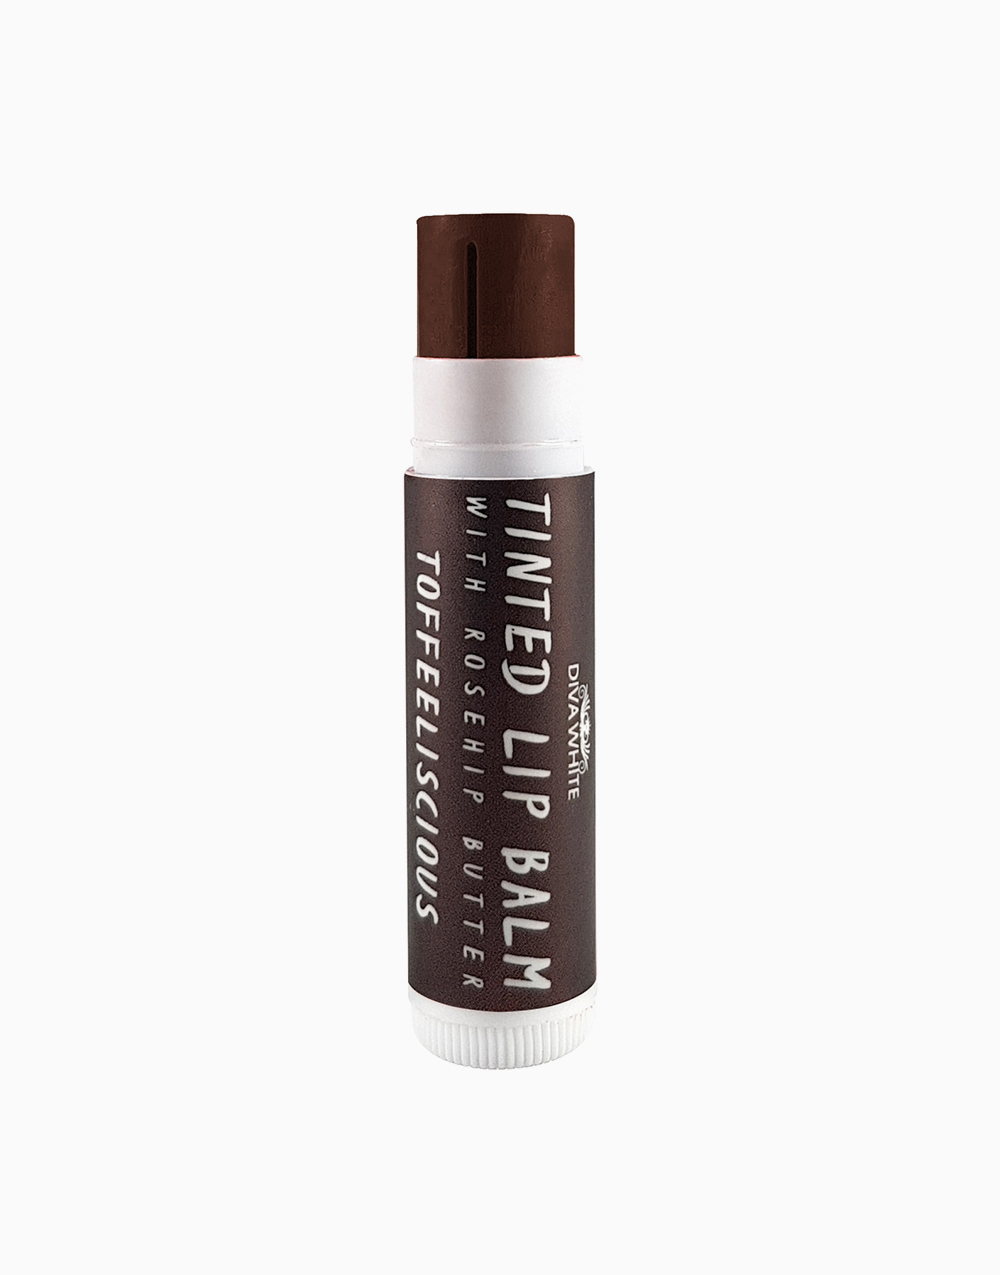 Tinted Lip Balm with Rosehip Butter in Toffeelicious by Diva White